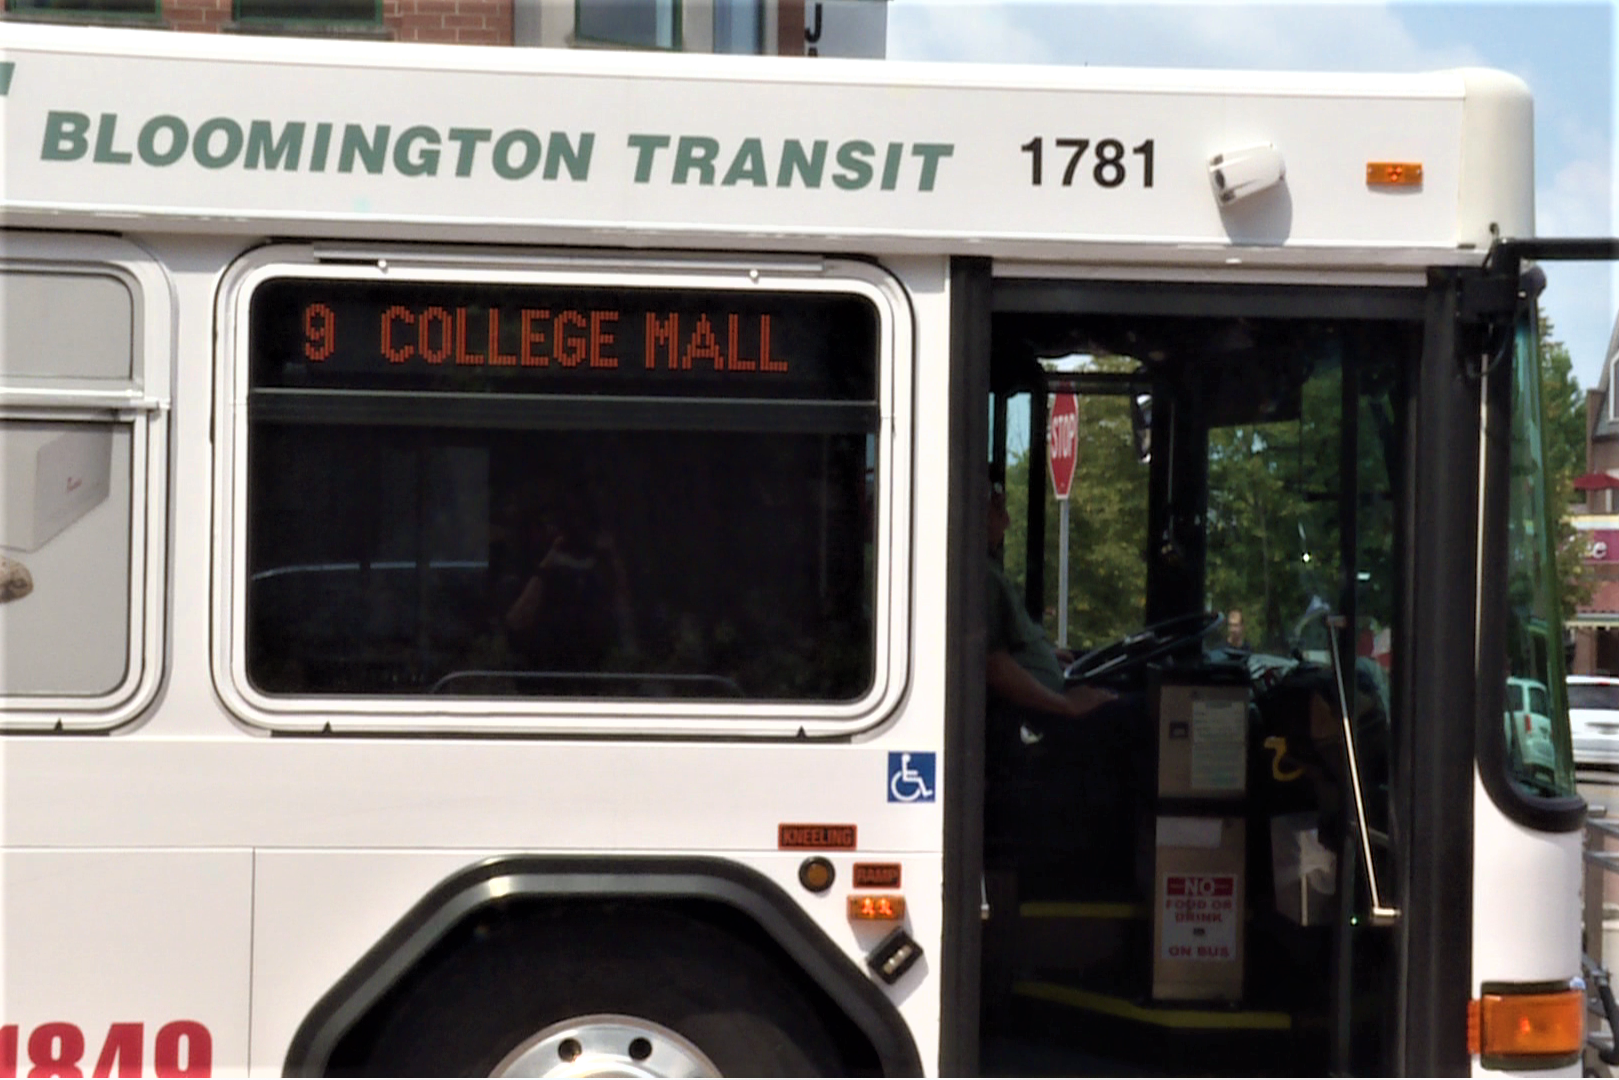 A Bloomington Transit public transportation bus in service.